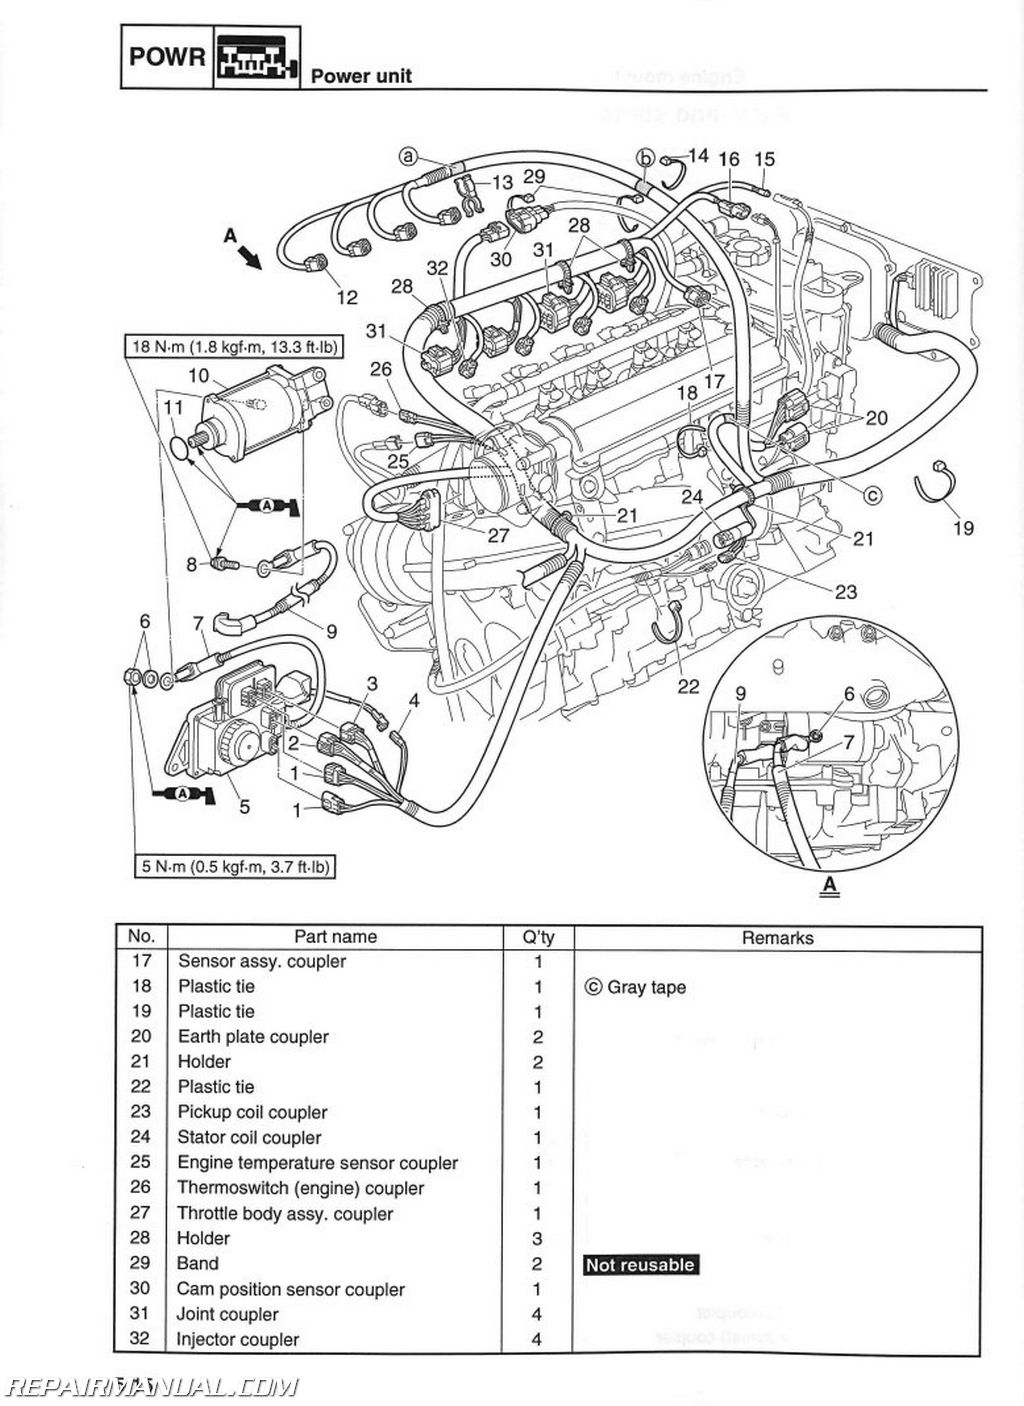 ops wiring diagrams ops engine image for user manual